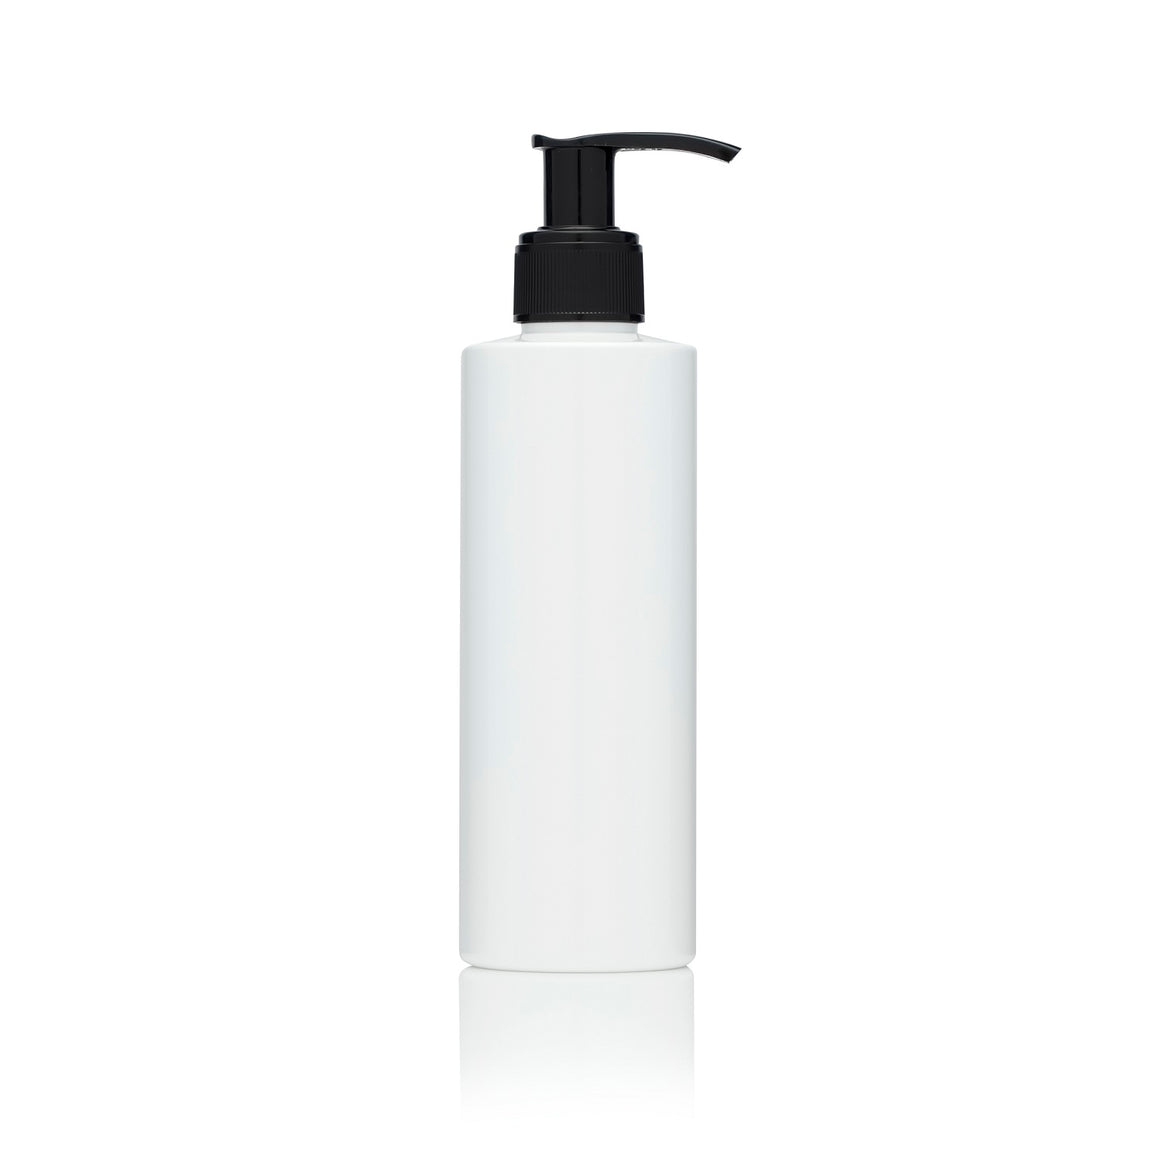 Native Milk Cleanser - 200ml Classic